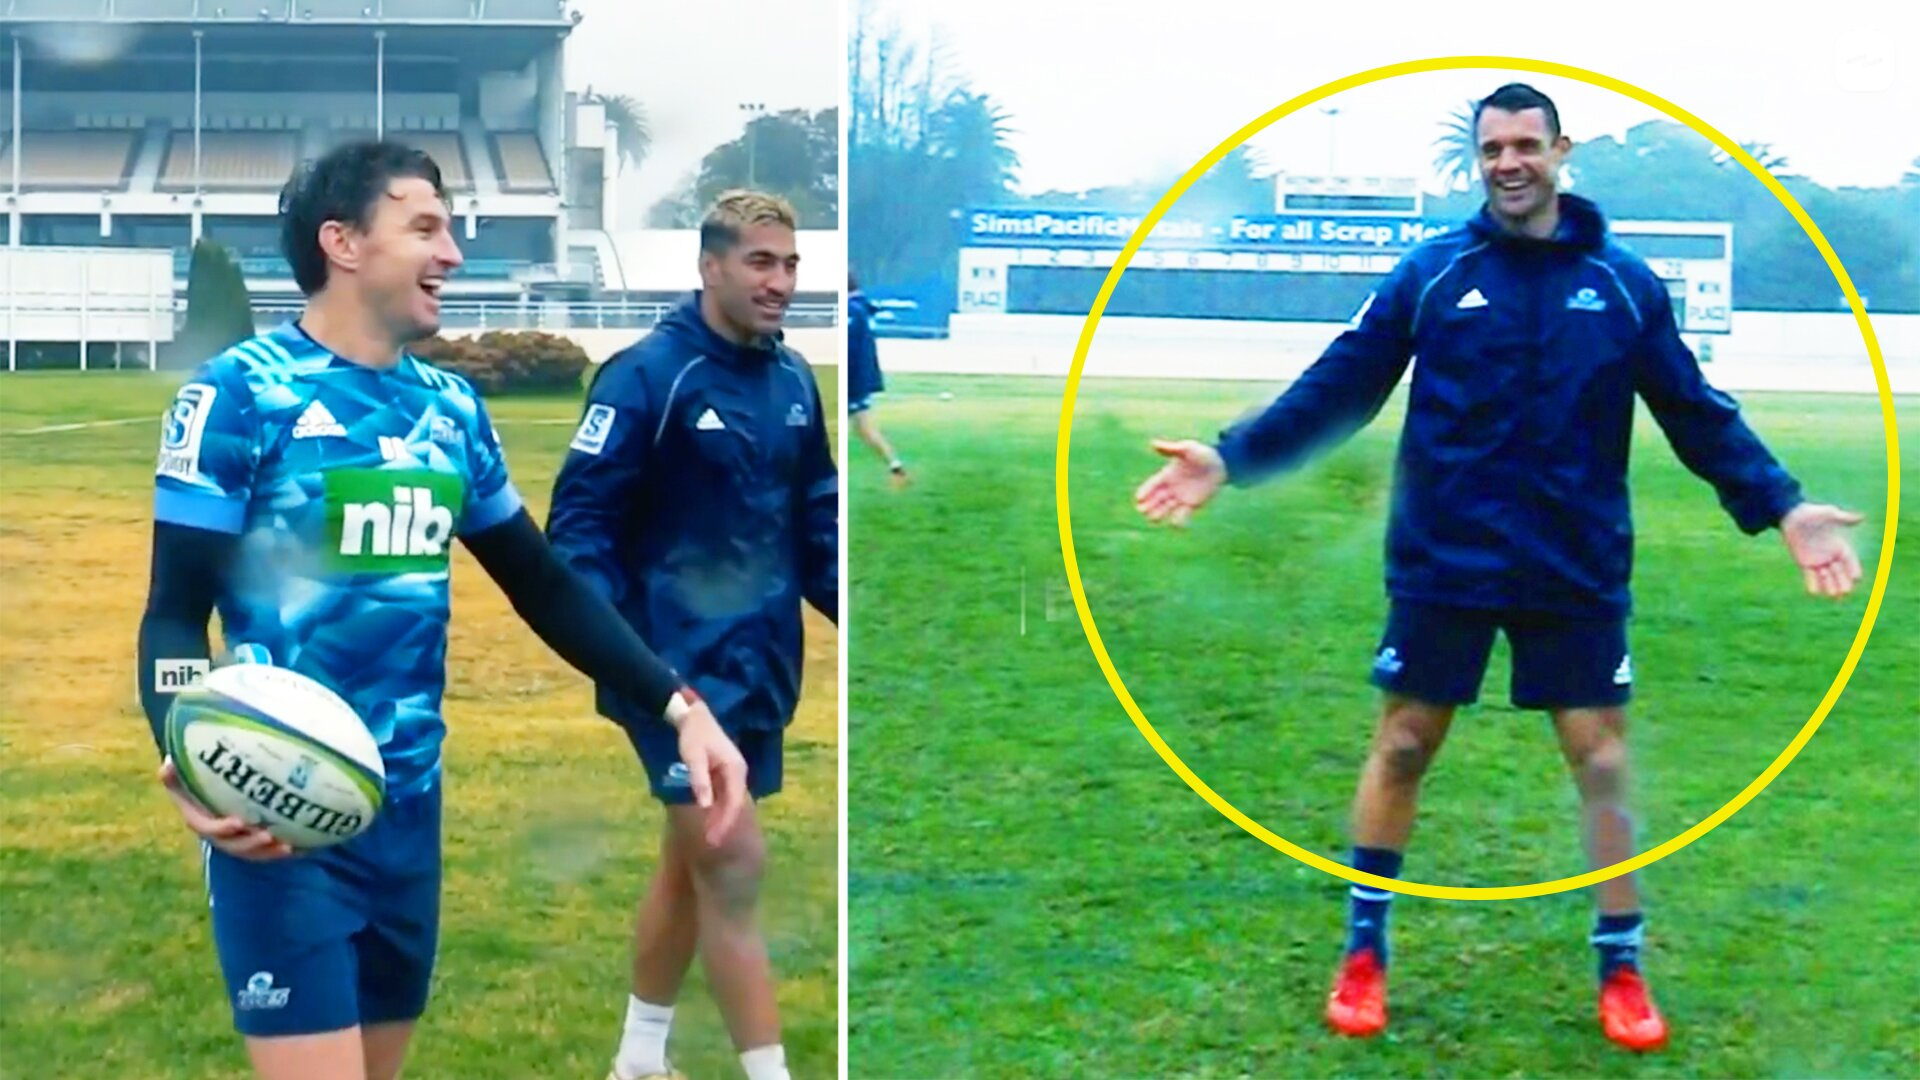 WATCH: New video shows Beauden Barrett and Dan Carter squaring off in epic kicking contest